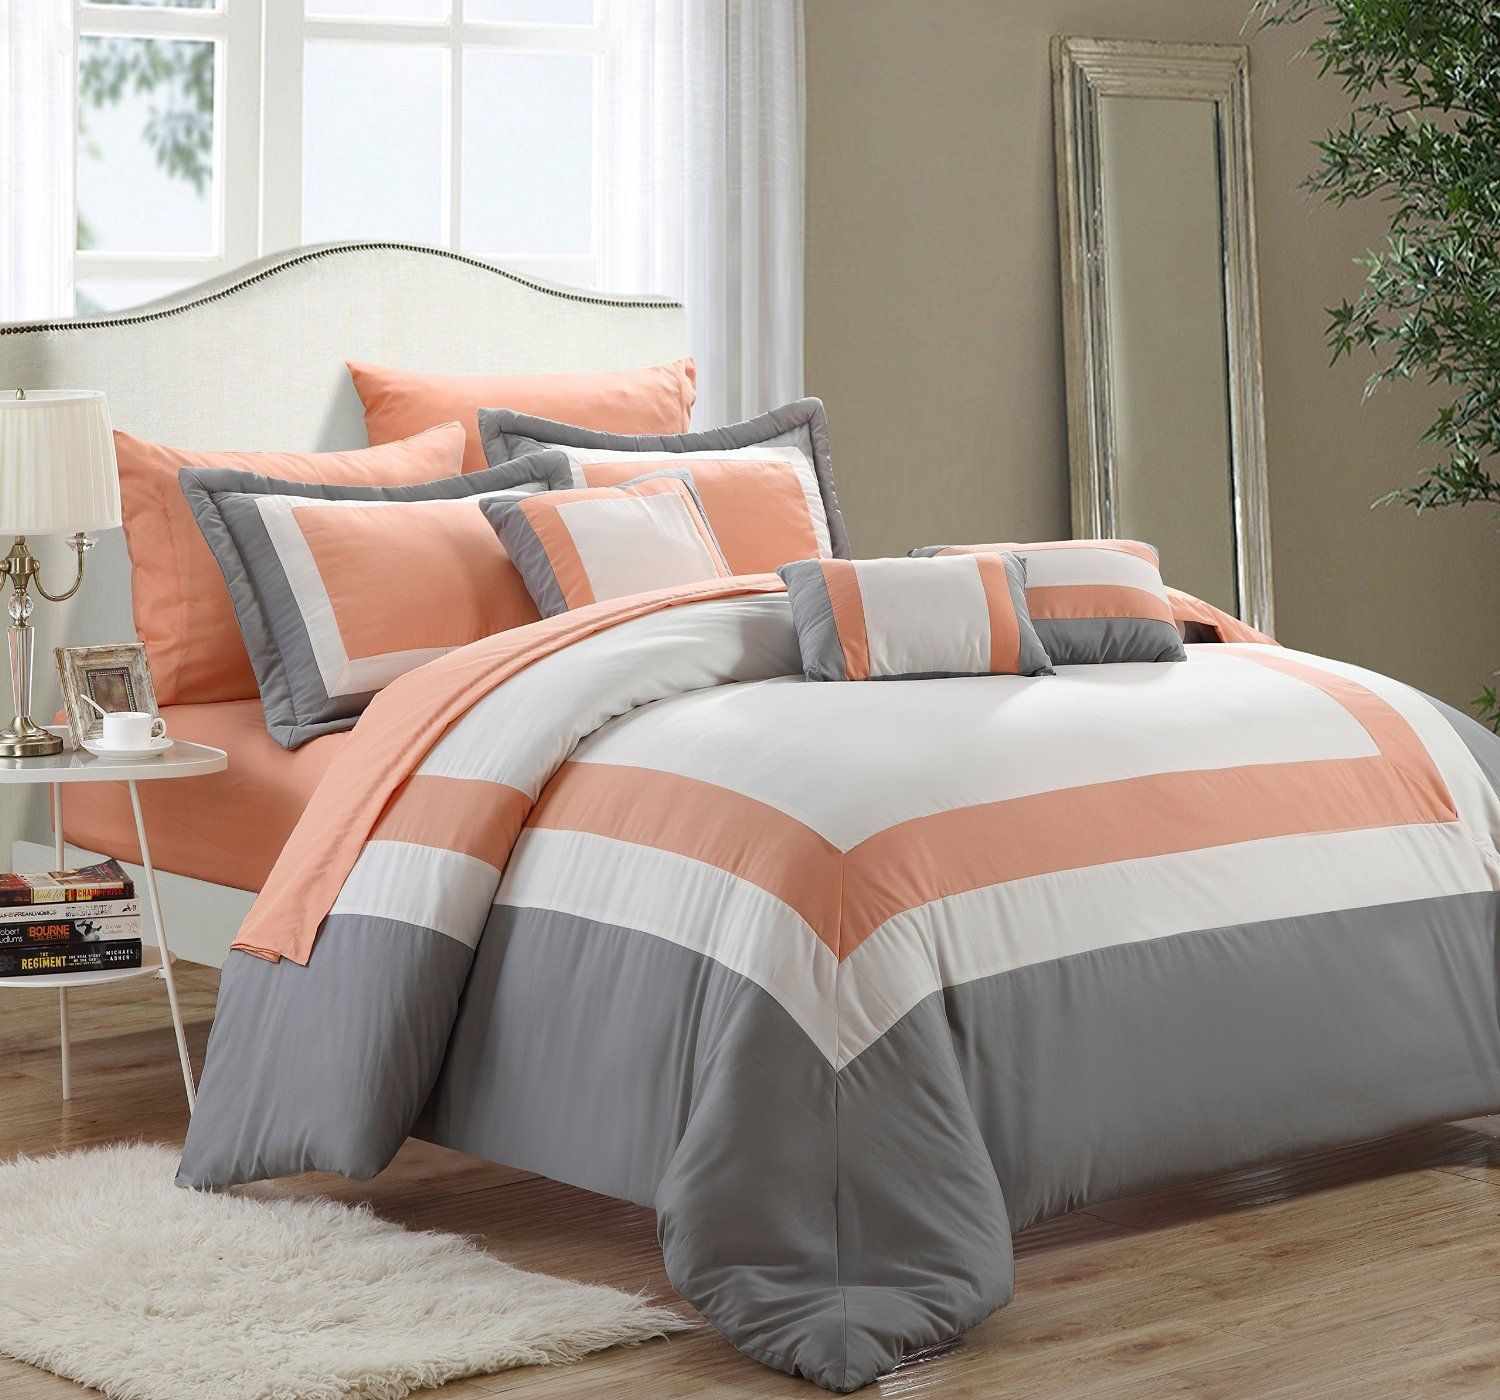 Total Fab Peach Colored forters & Bedding Sets